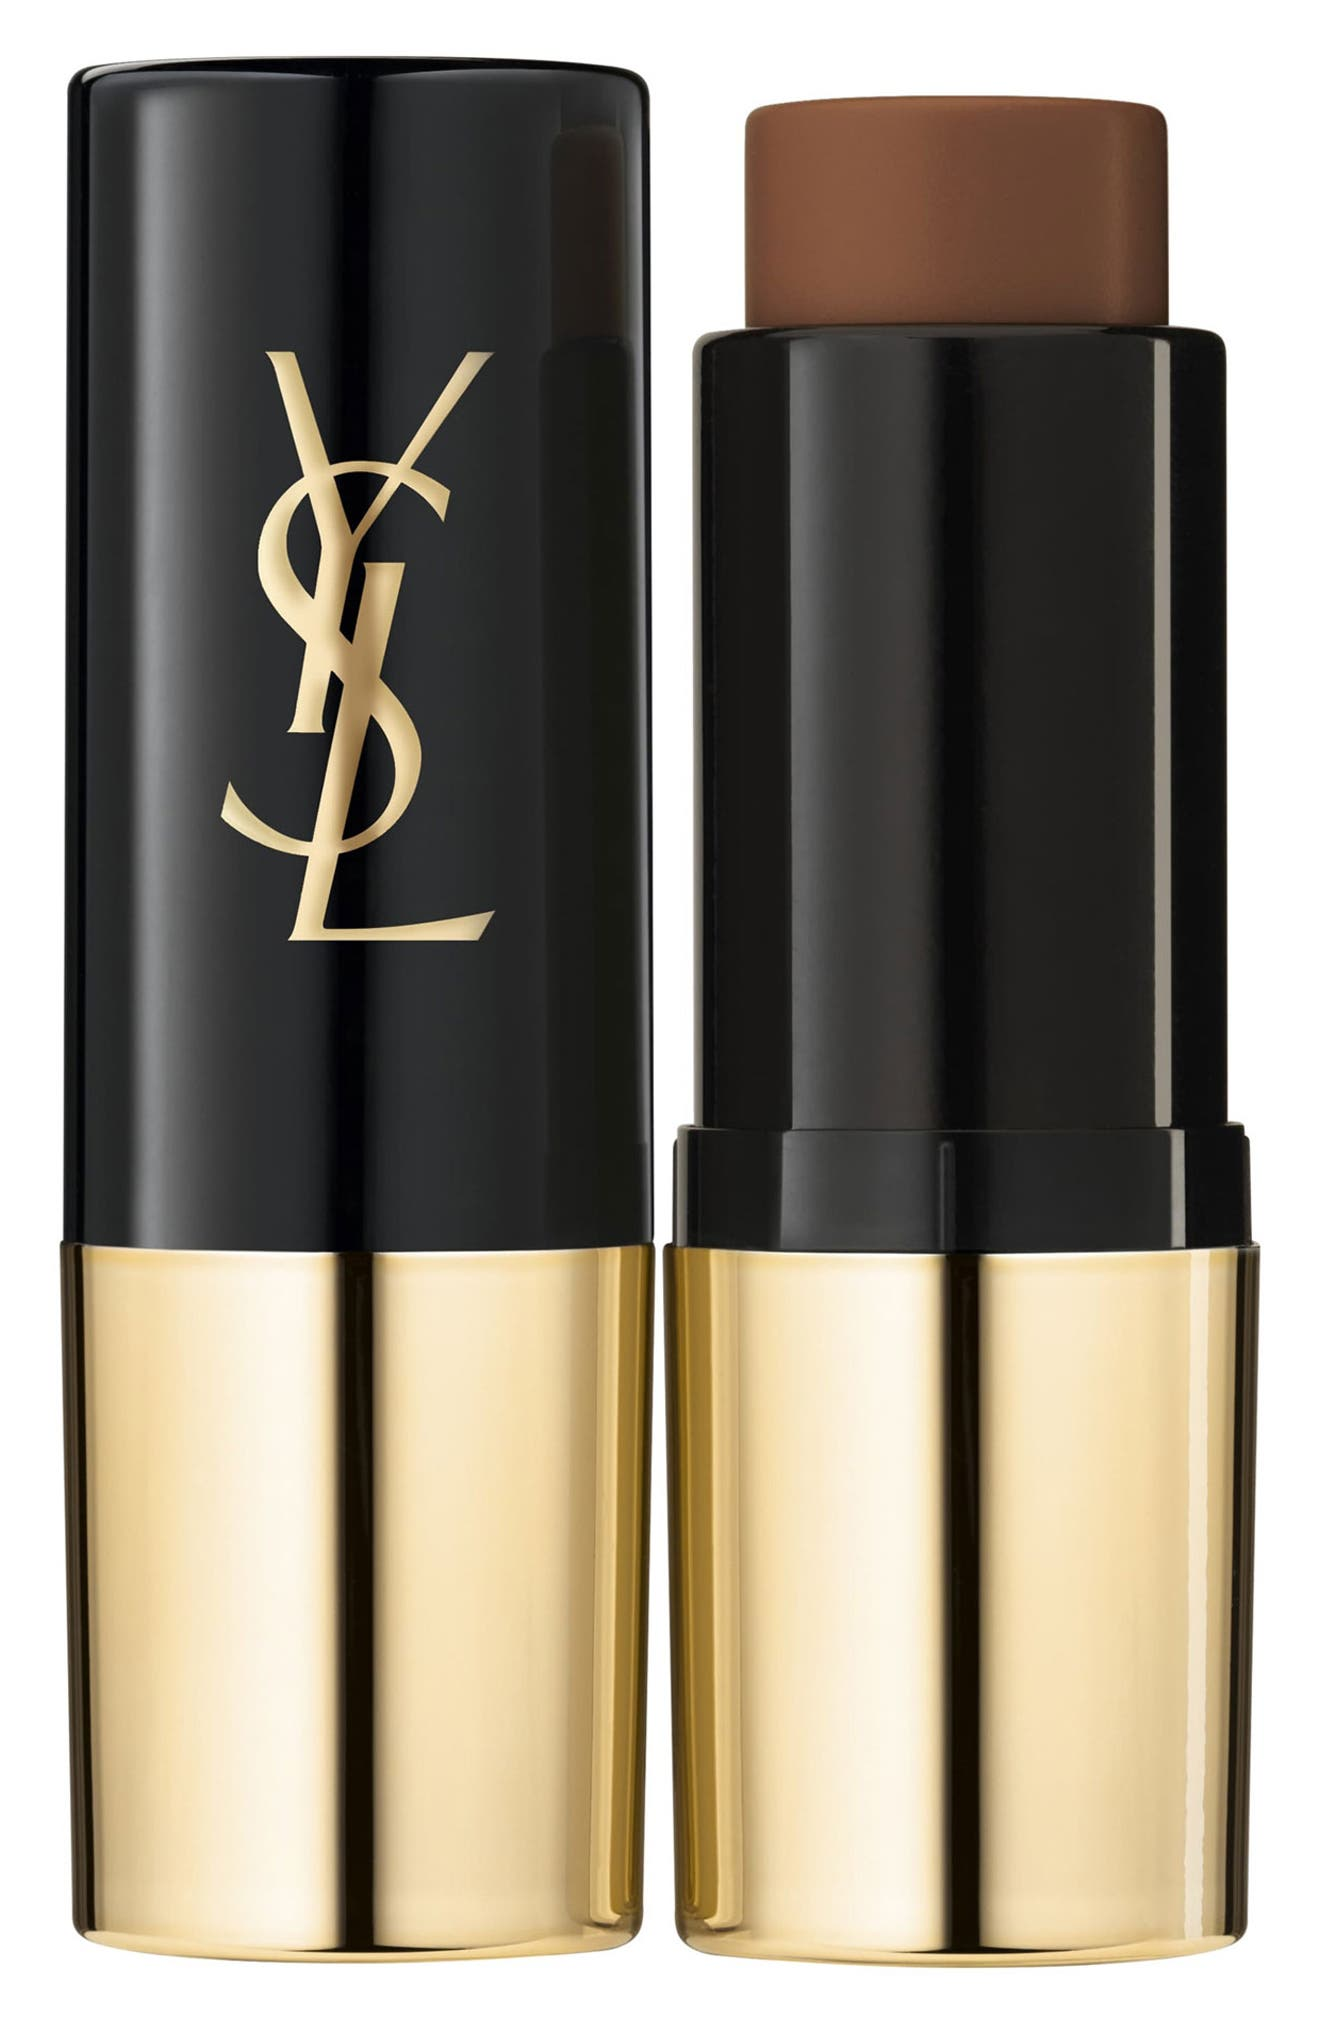 Yves Saint Laurent All Hours Foundation Stick - B85 Coffee